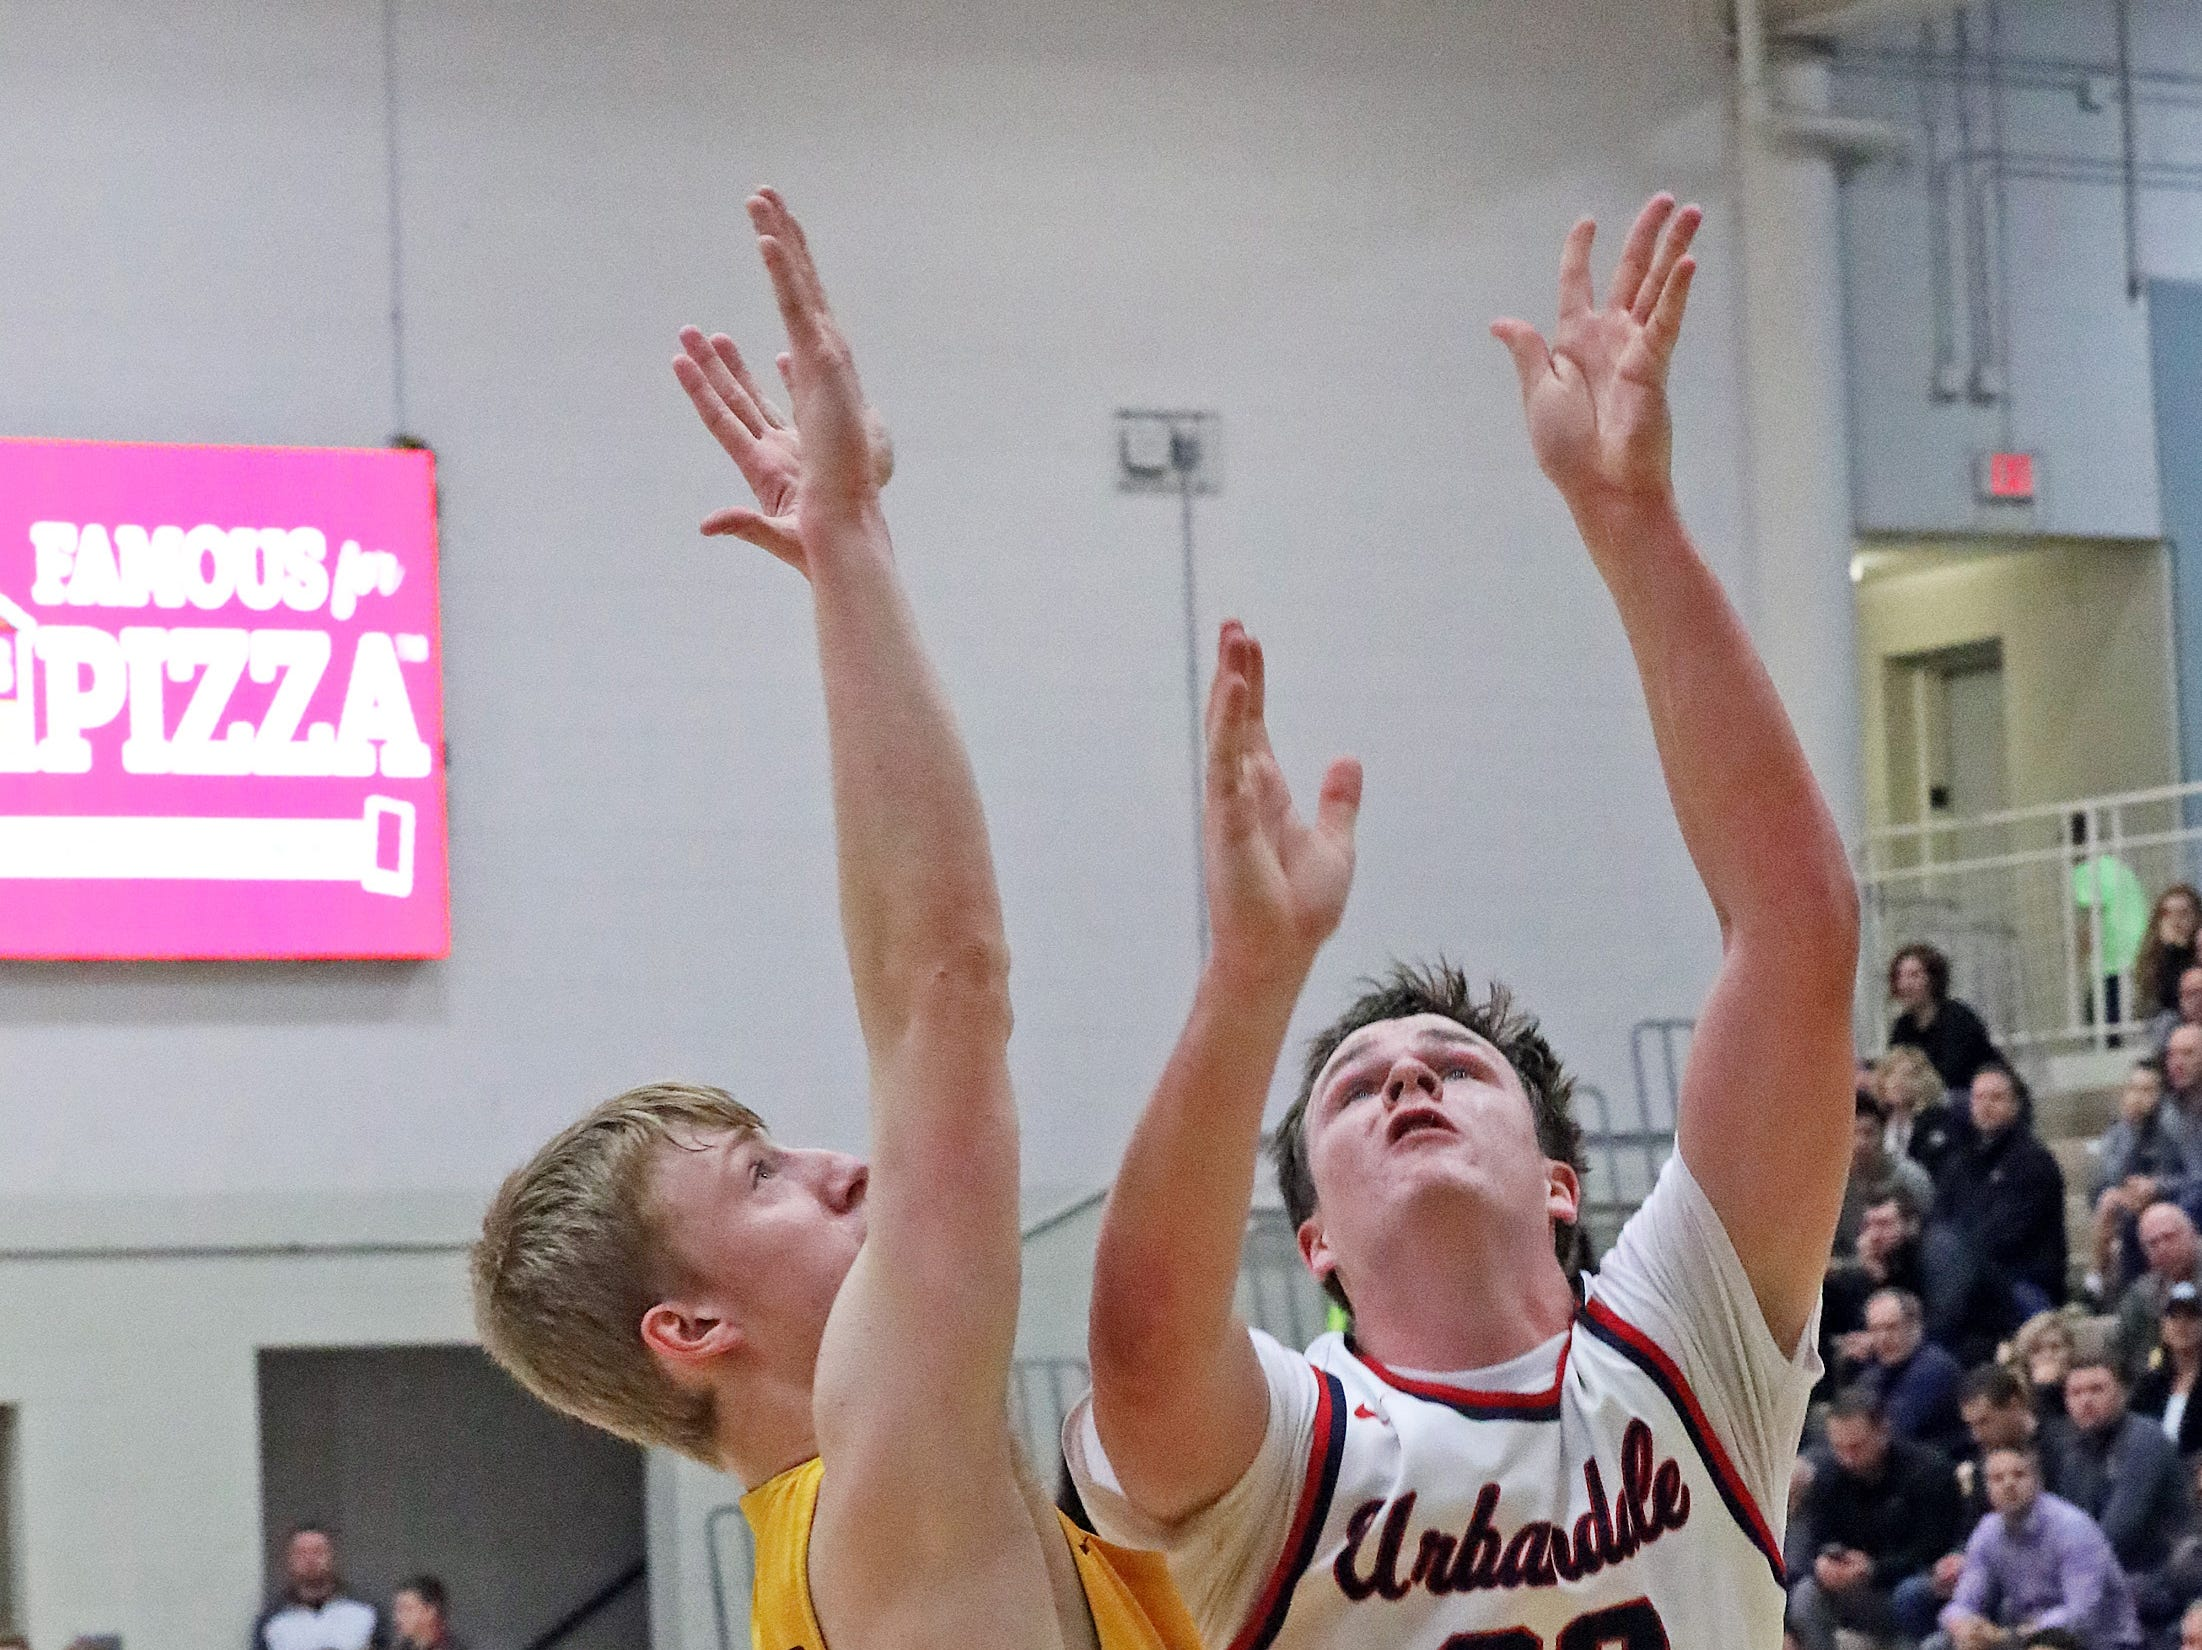 Urbandale senior Lucas Strain shoots over the strong defense of Ankeny senior Dillon Carlson as the Ankeny Hawks compete against the Urbandale J-Hawks in high school basketball on Friday, Dec. 14, 2018 at Urbandale High School. Ankeny won 62 to 52 to remain undefeated at 6-0.